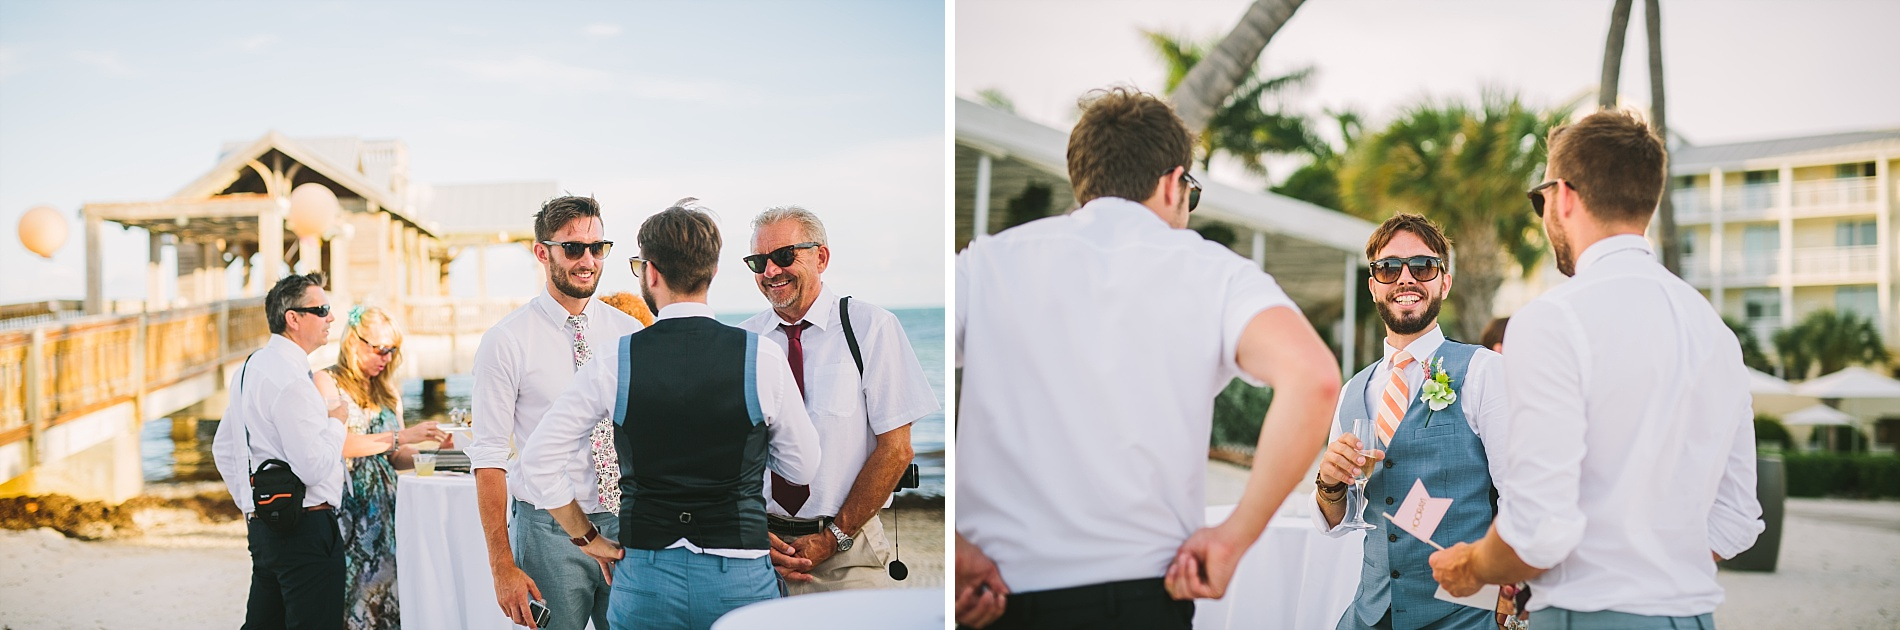 key west wedding photography 047